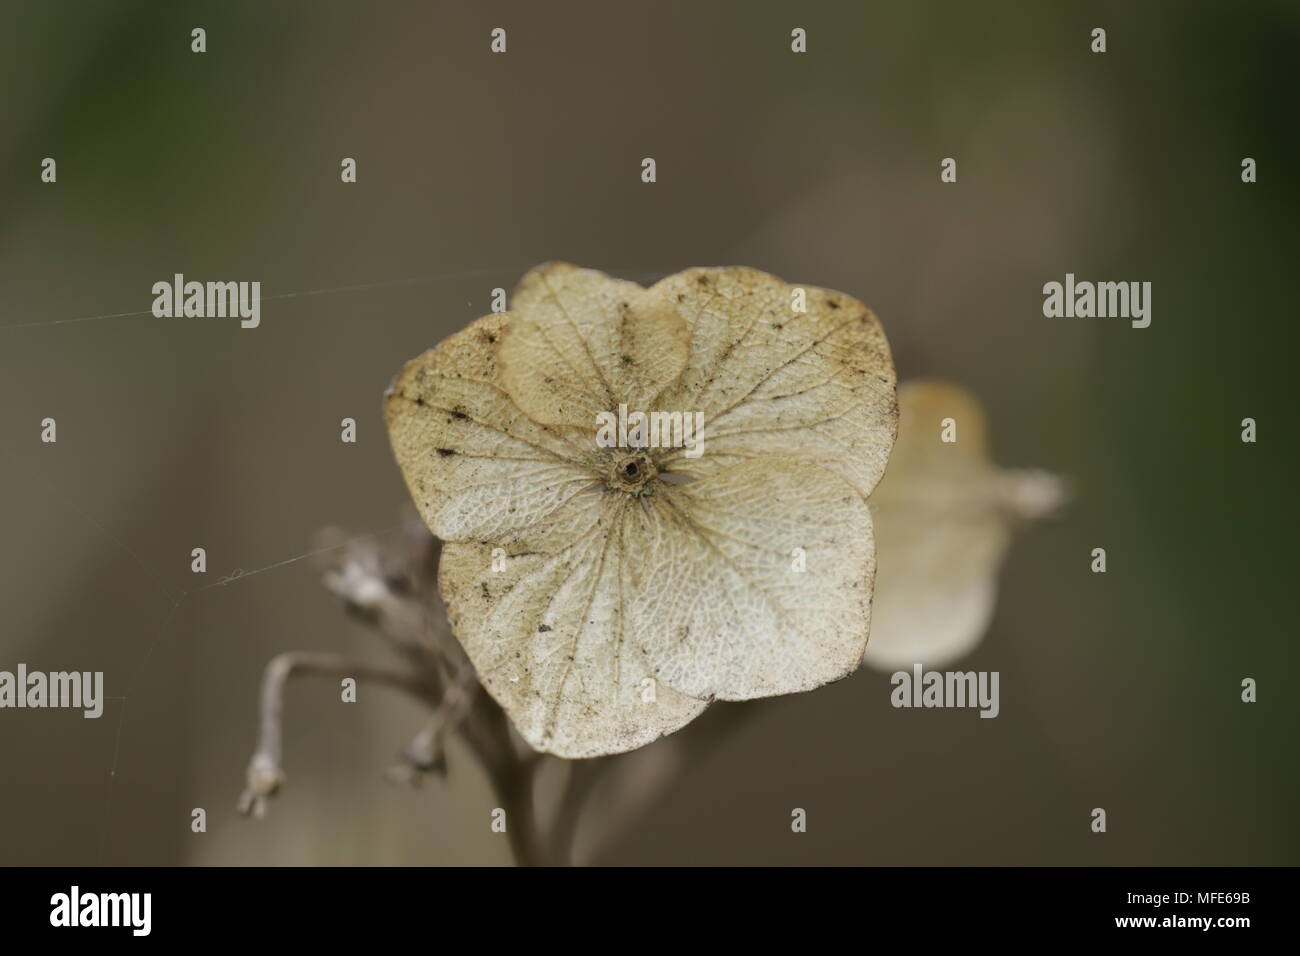 A dried flower of a Hydrangea - Stock Image